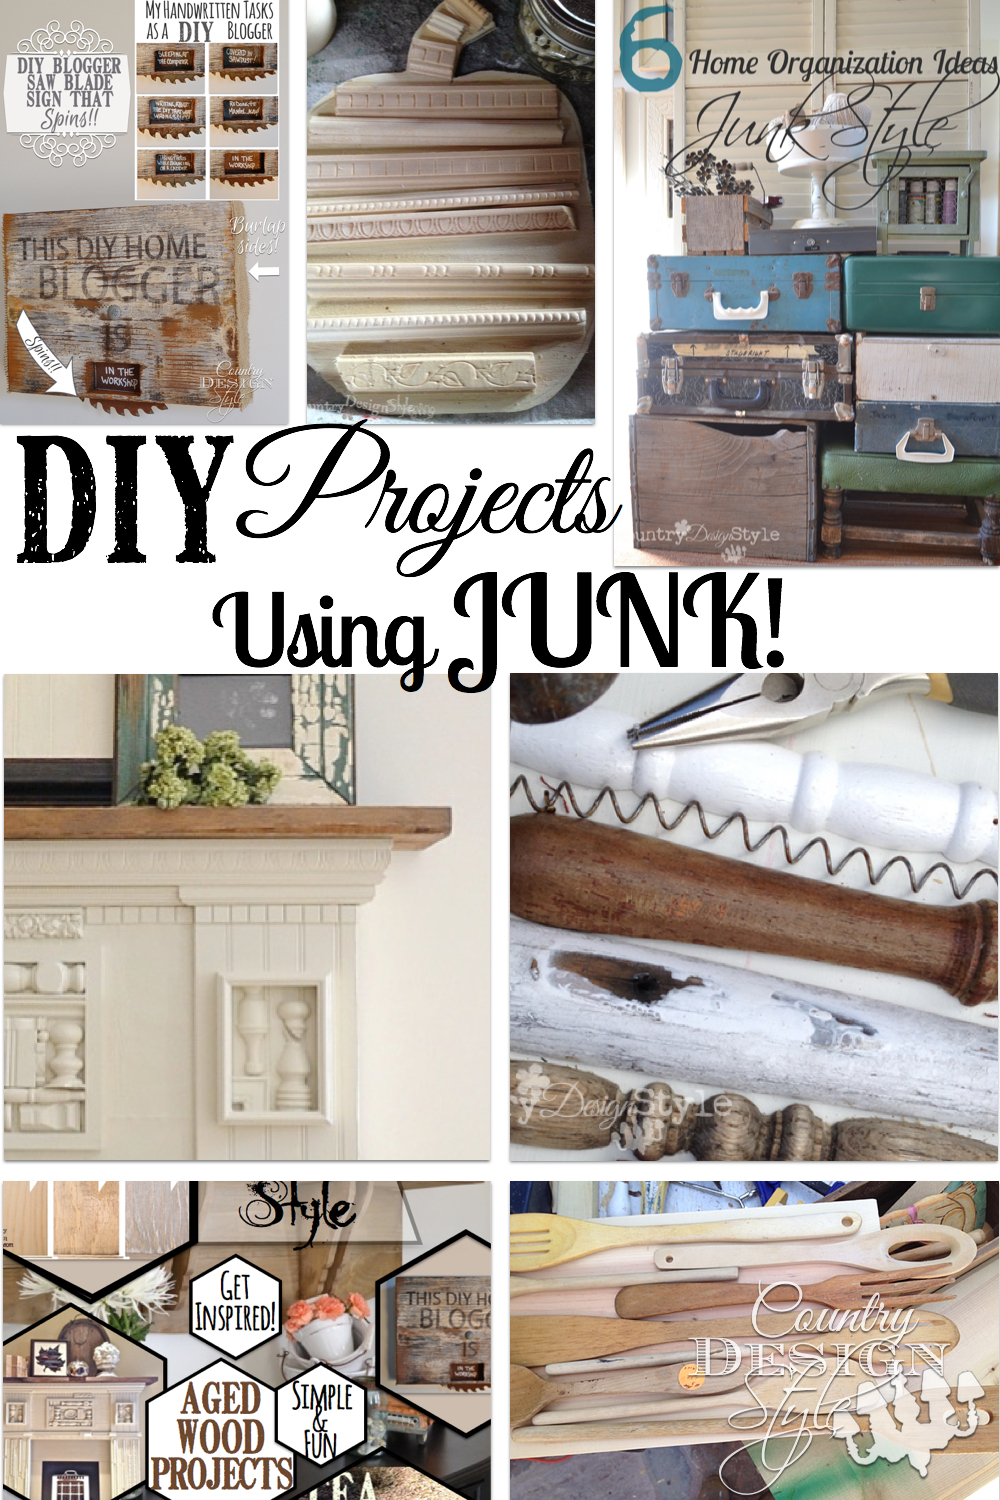 Junk Country Design Style : diy projects using junk country design style pn from countrydesignstyle.com size 1000 x 1500 jpeg 1660kB